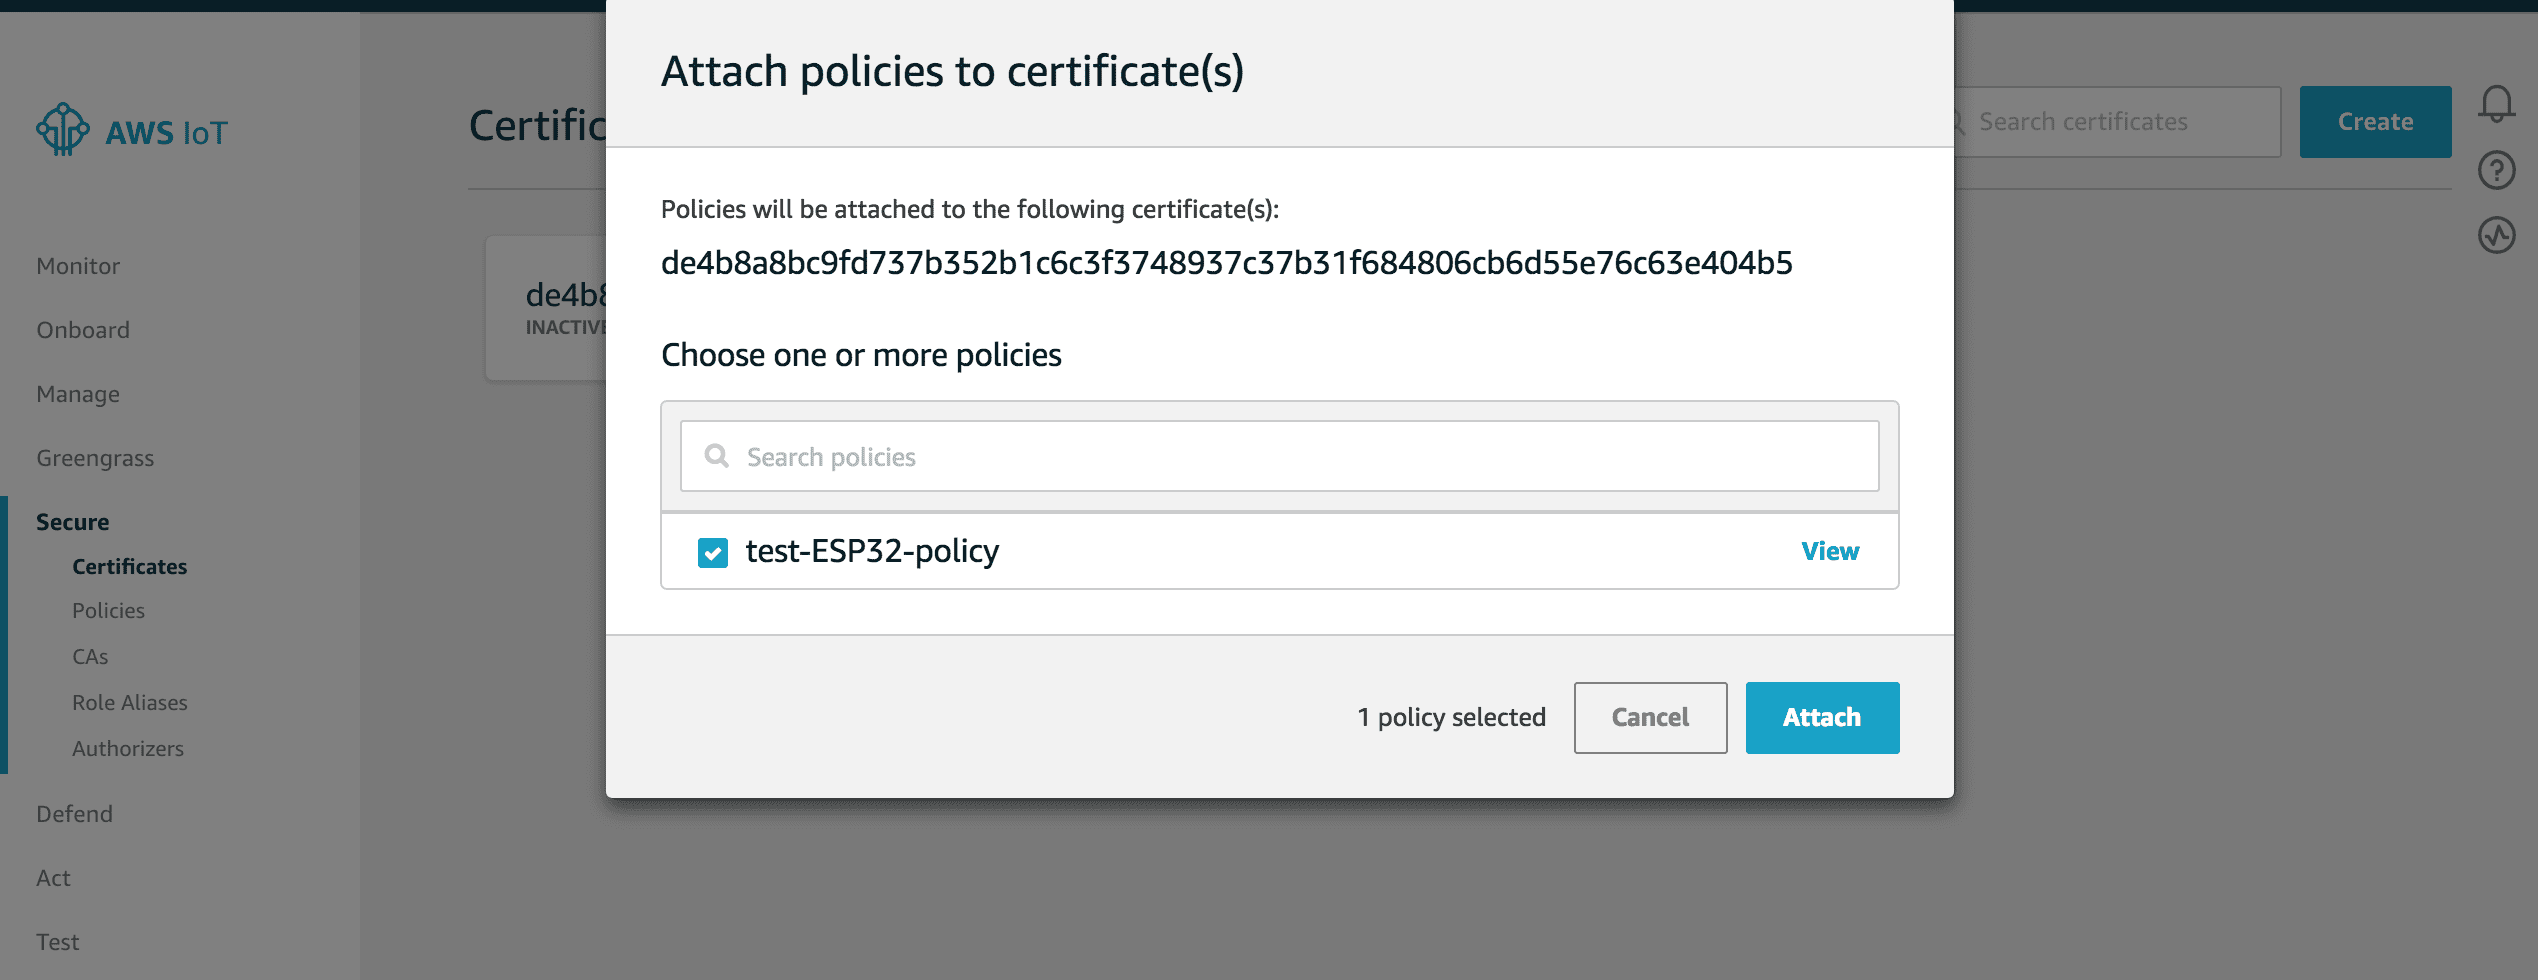 Attach policies to certificates in AWS IoT